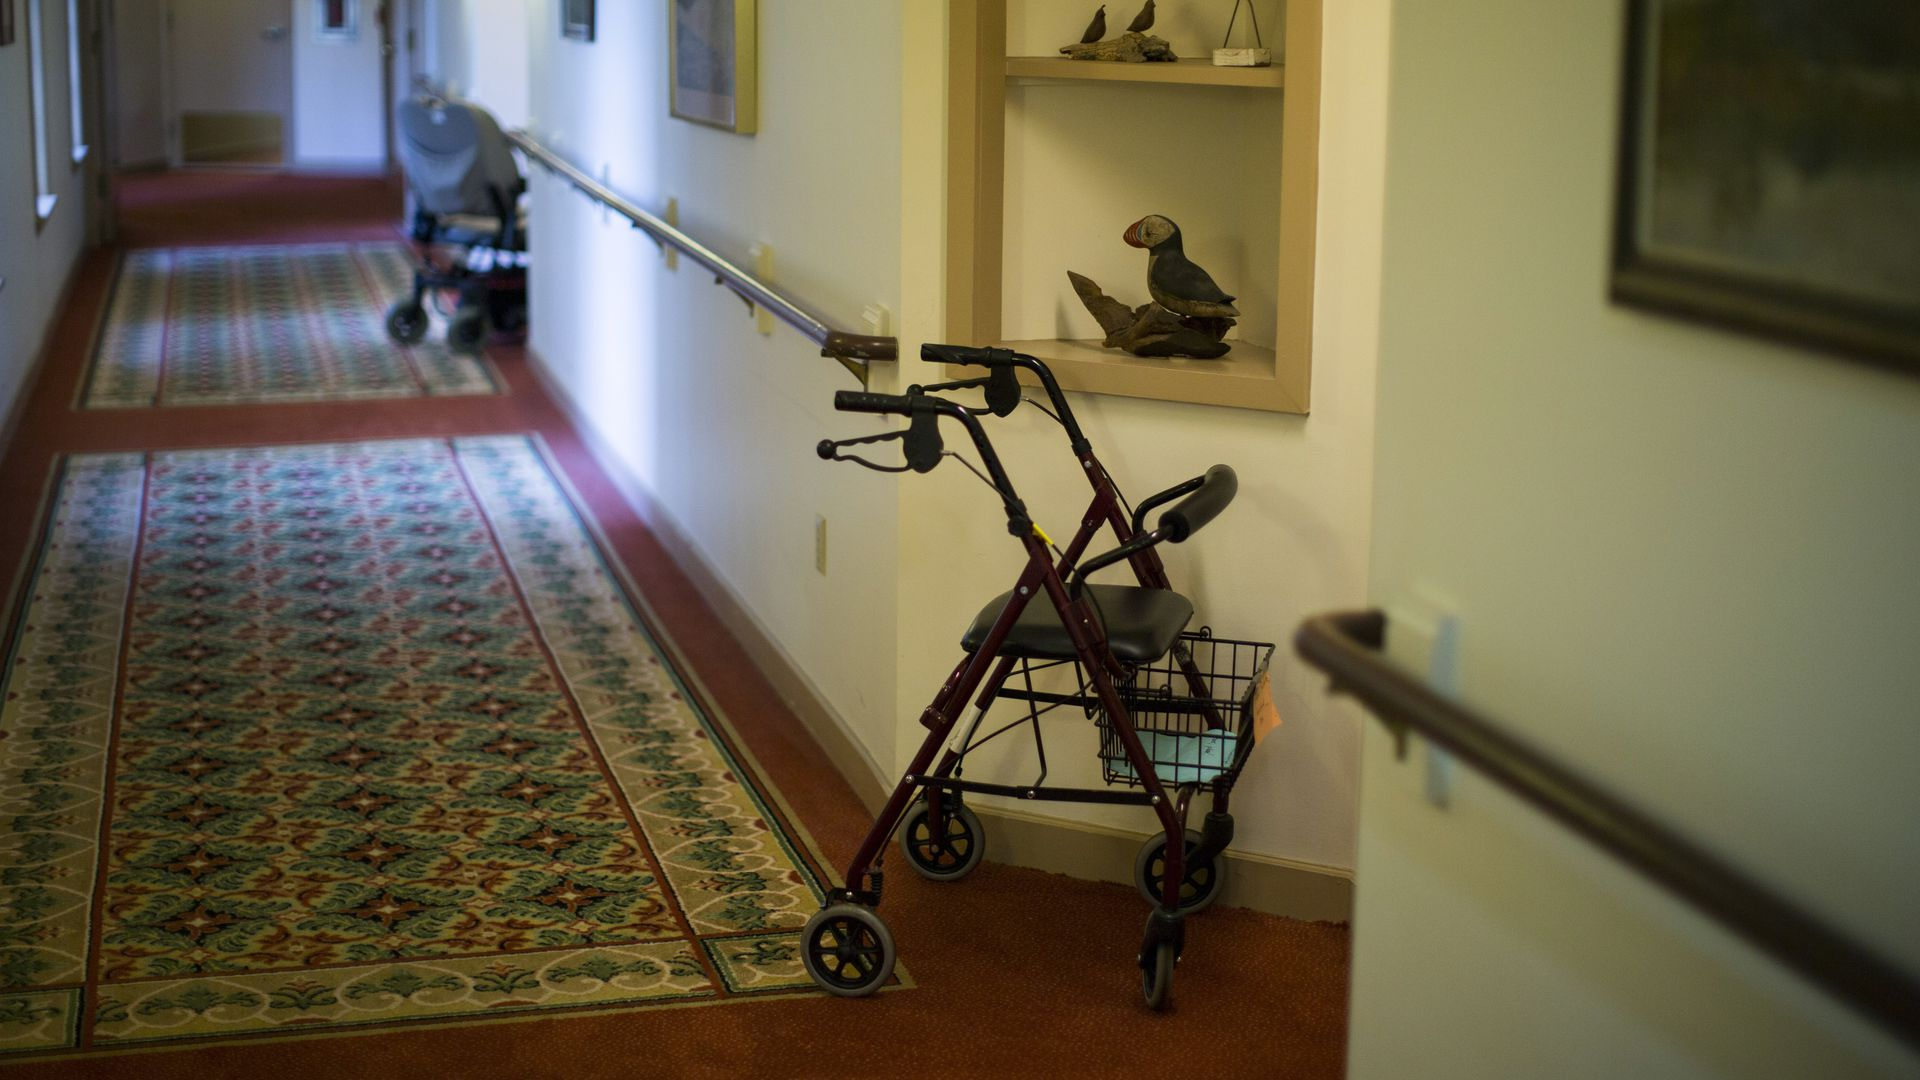 A walker and an electric wheelchair in a nursing home